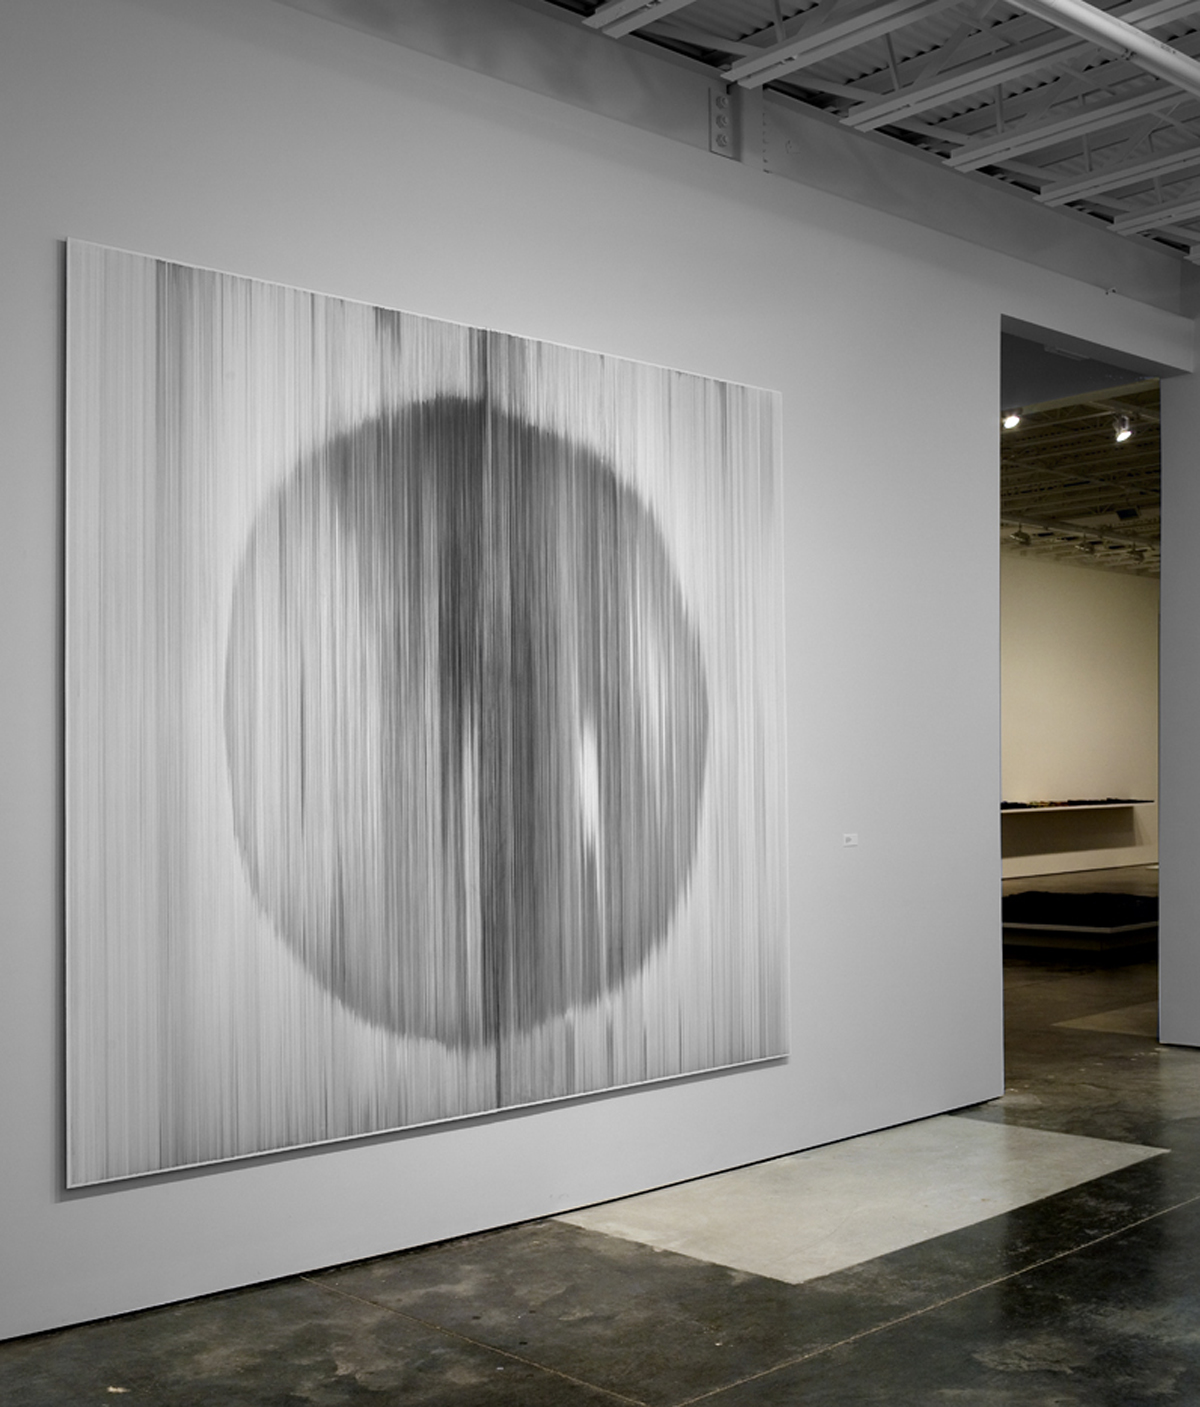 parallel 12 (round)  2009 graphite on cotton mat board 9 by 10 feet Private collection, Dallas, TX